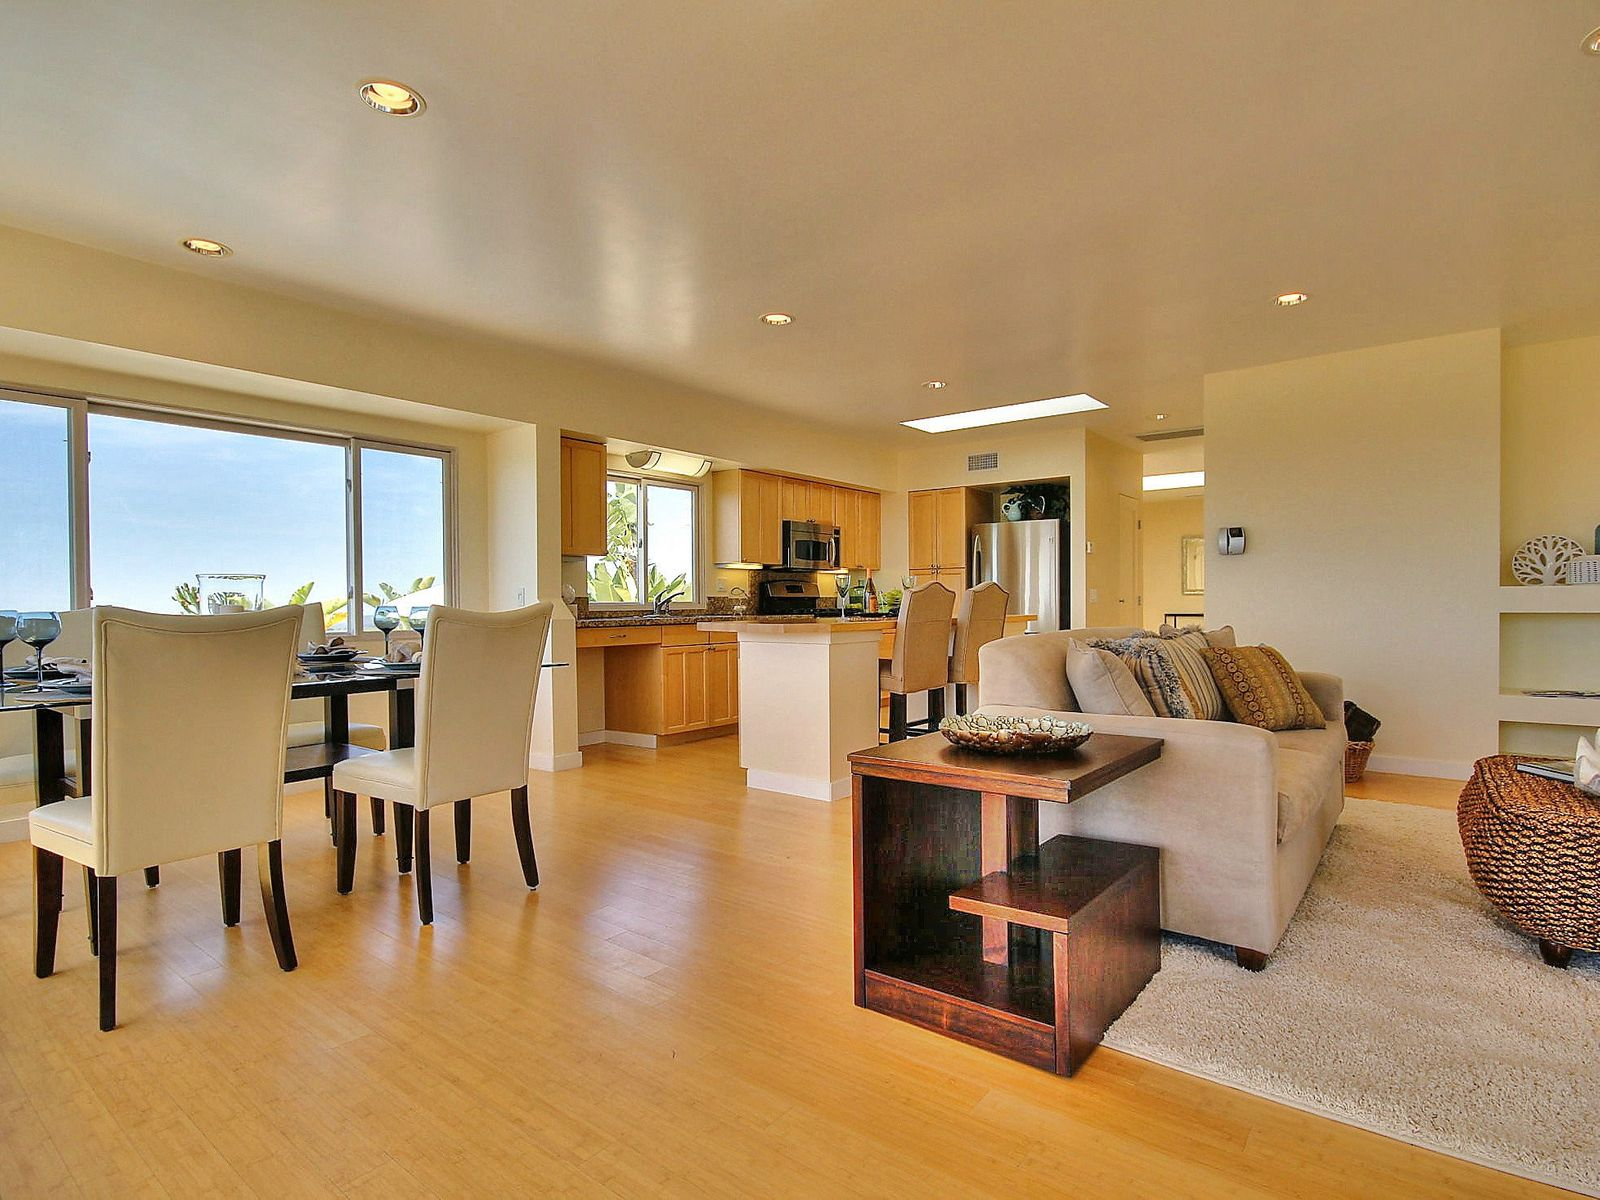 It's All About the Views, Santa Barbara CA Single Family Home - Santa Barbara Real Estate